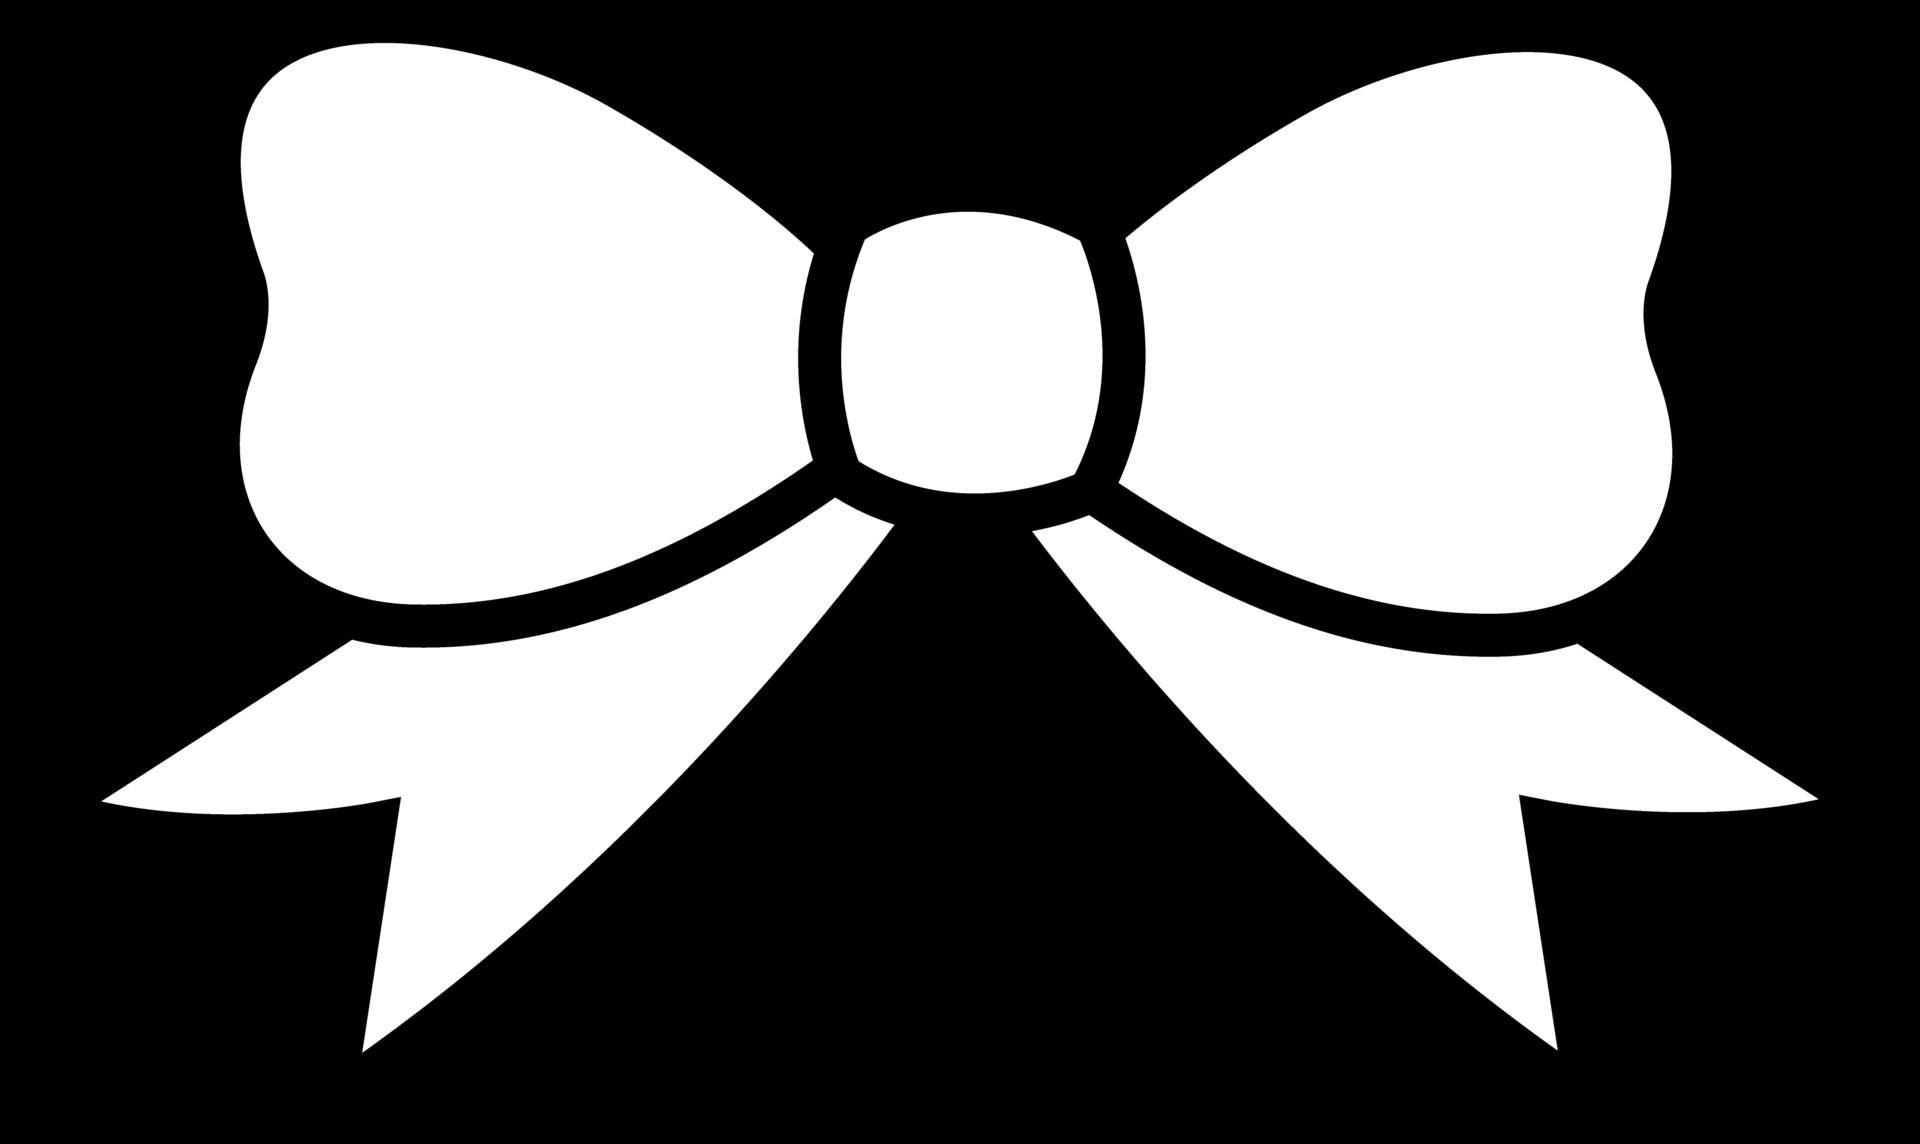 Bow clipart black and white: Hair Bow Clip Art Black